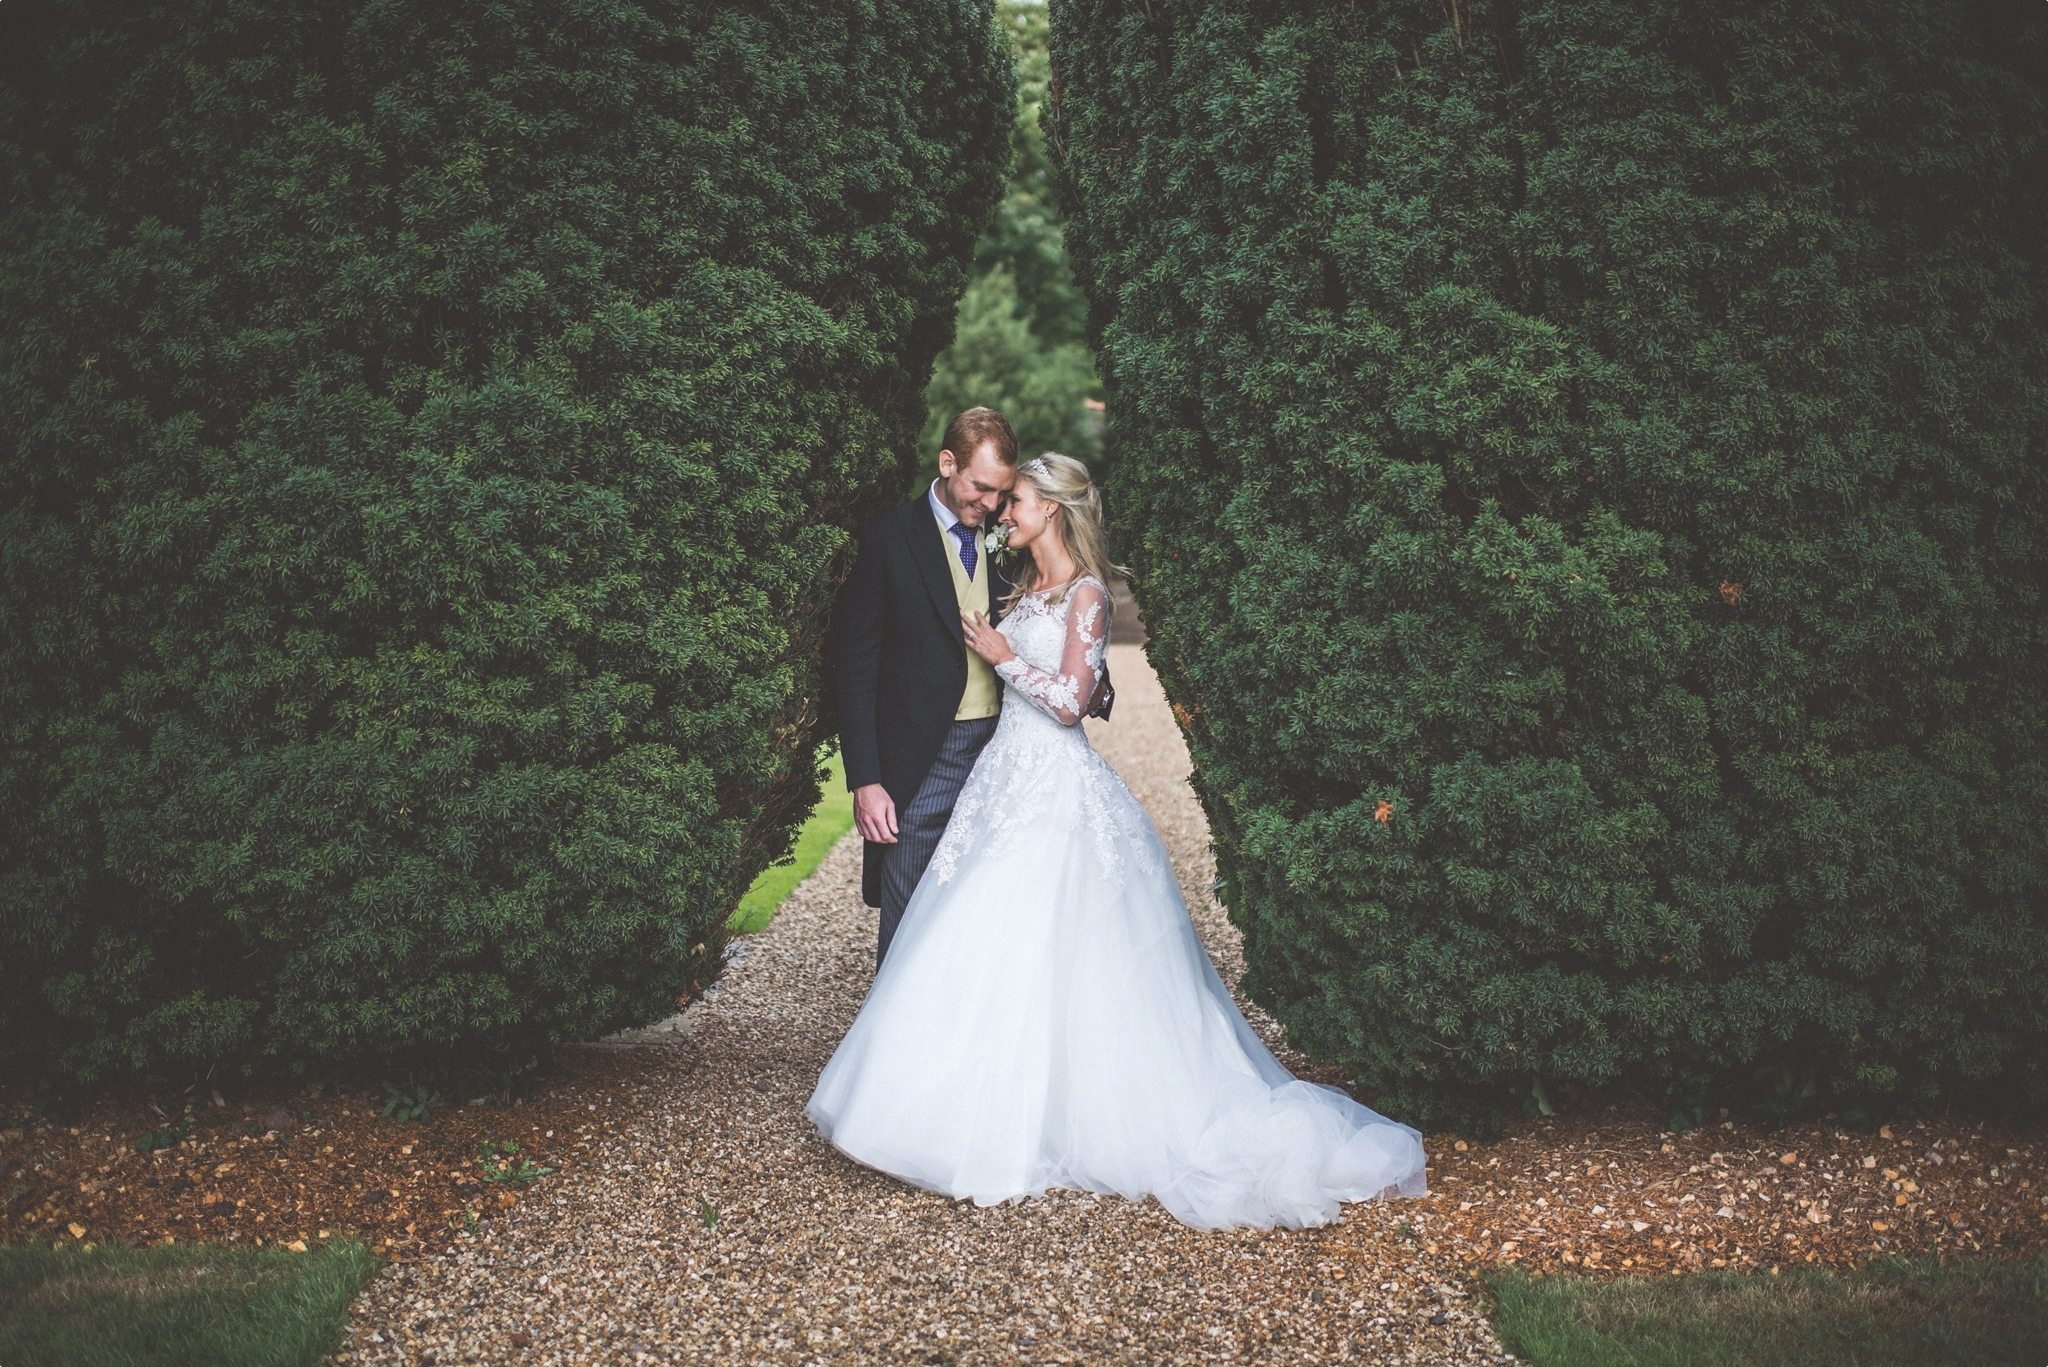 st-audries-park-wedding-maria-assia-photography-618